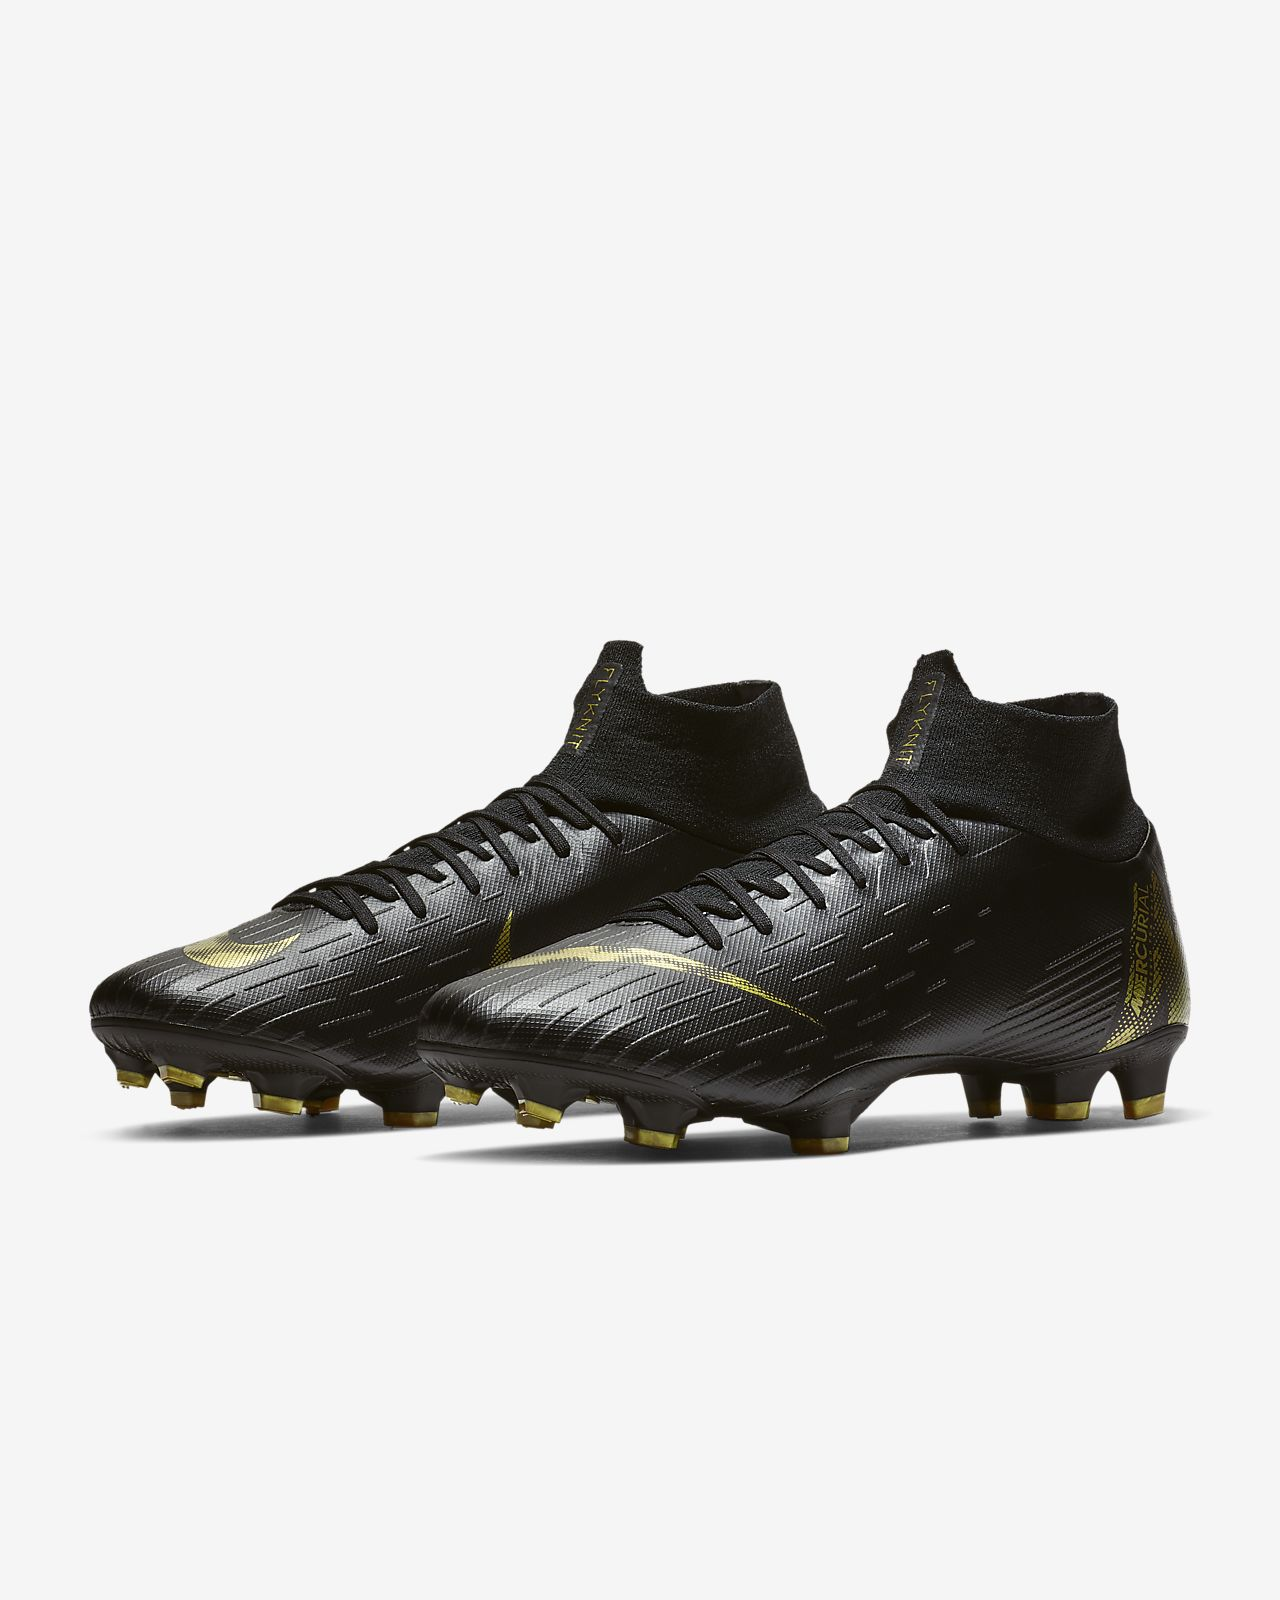 efff19fa744e0 Nike Superfly 6 Pro FG Firm-Ground Soccer Cleat . Nike.com